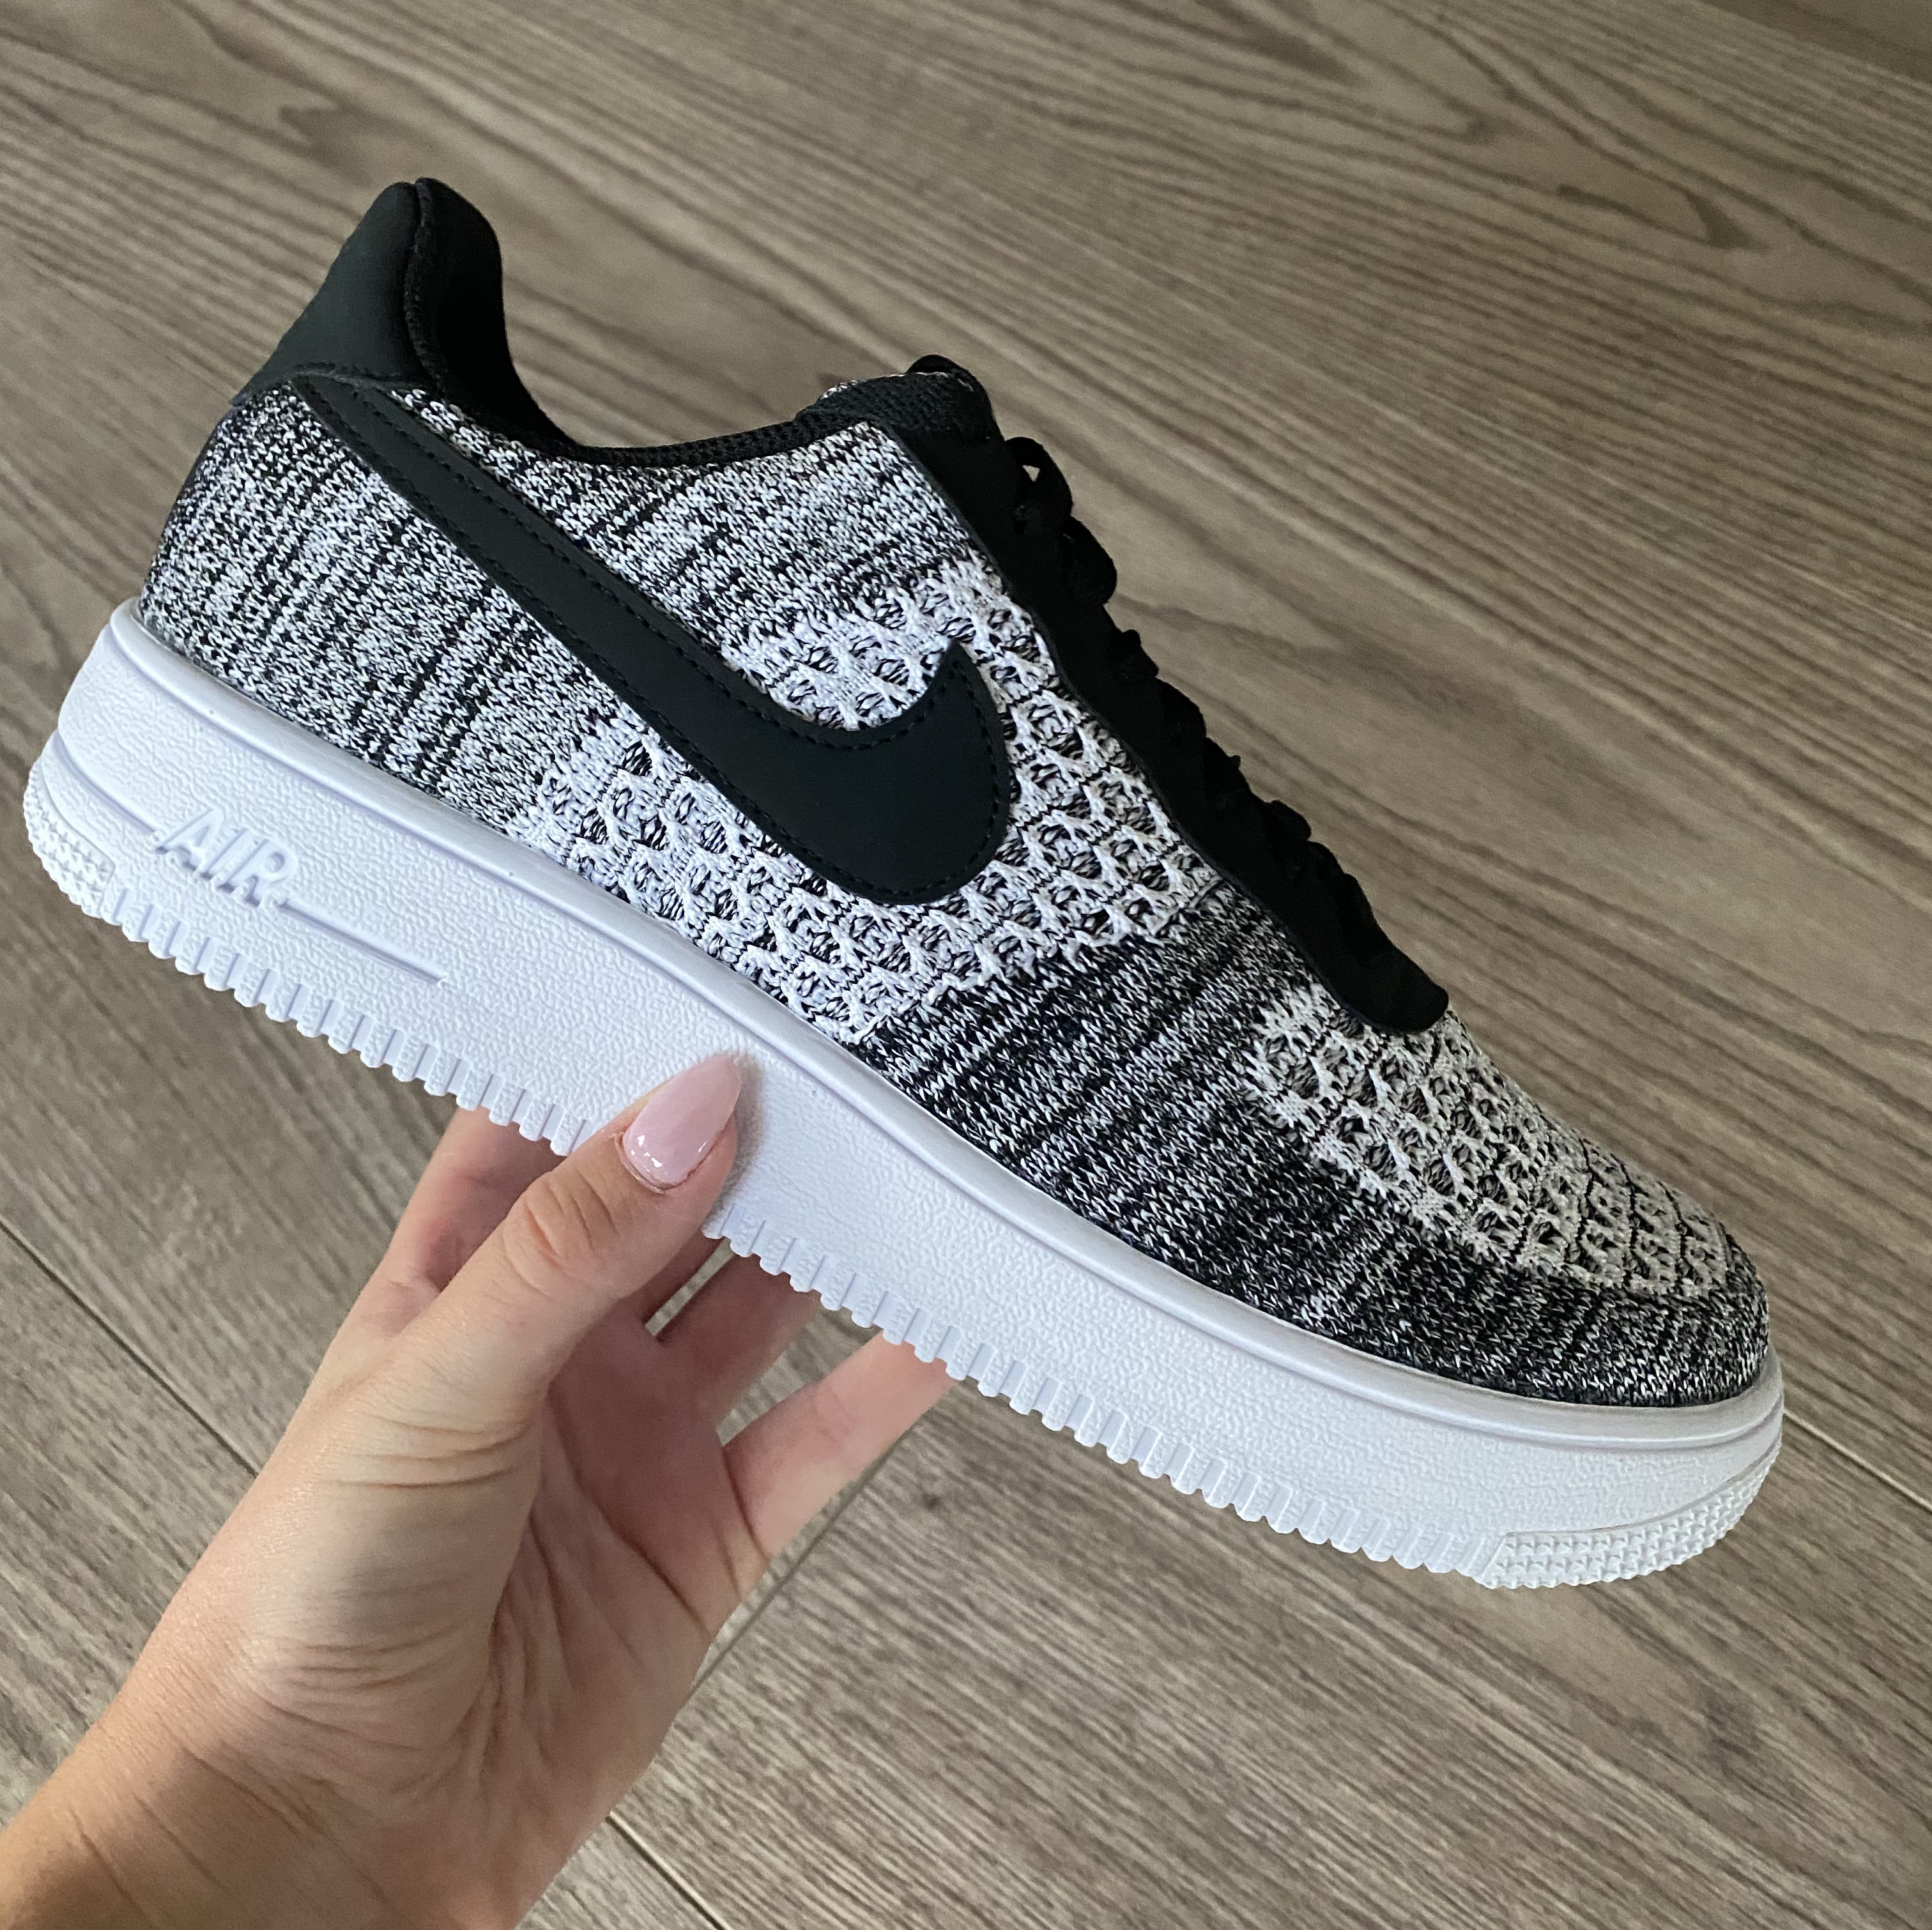 Boty Nike Air force 1 Flyknit